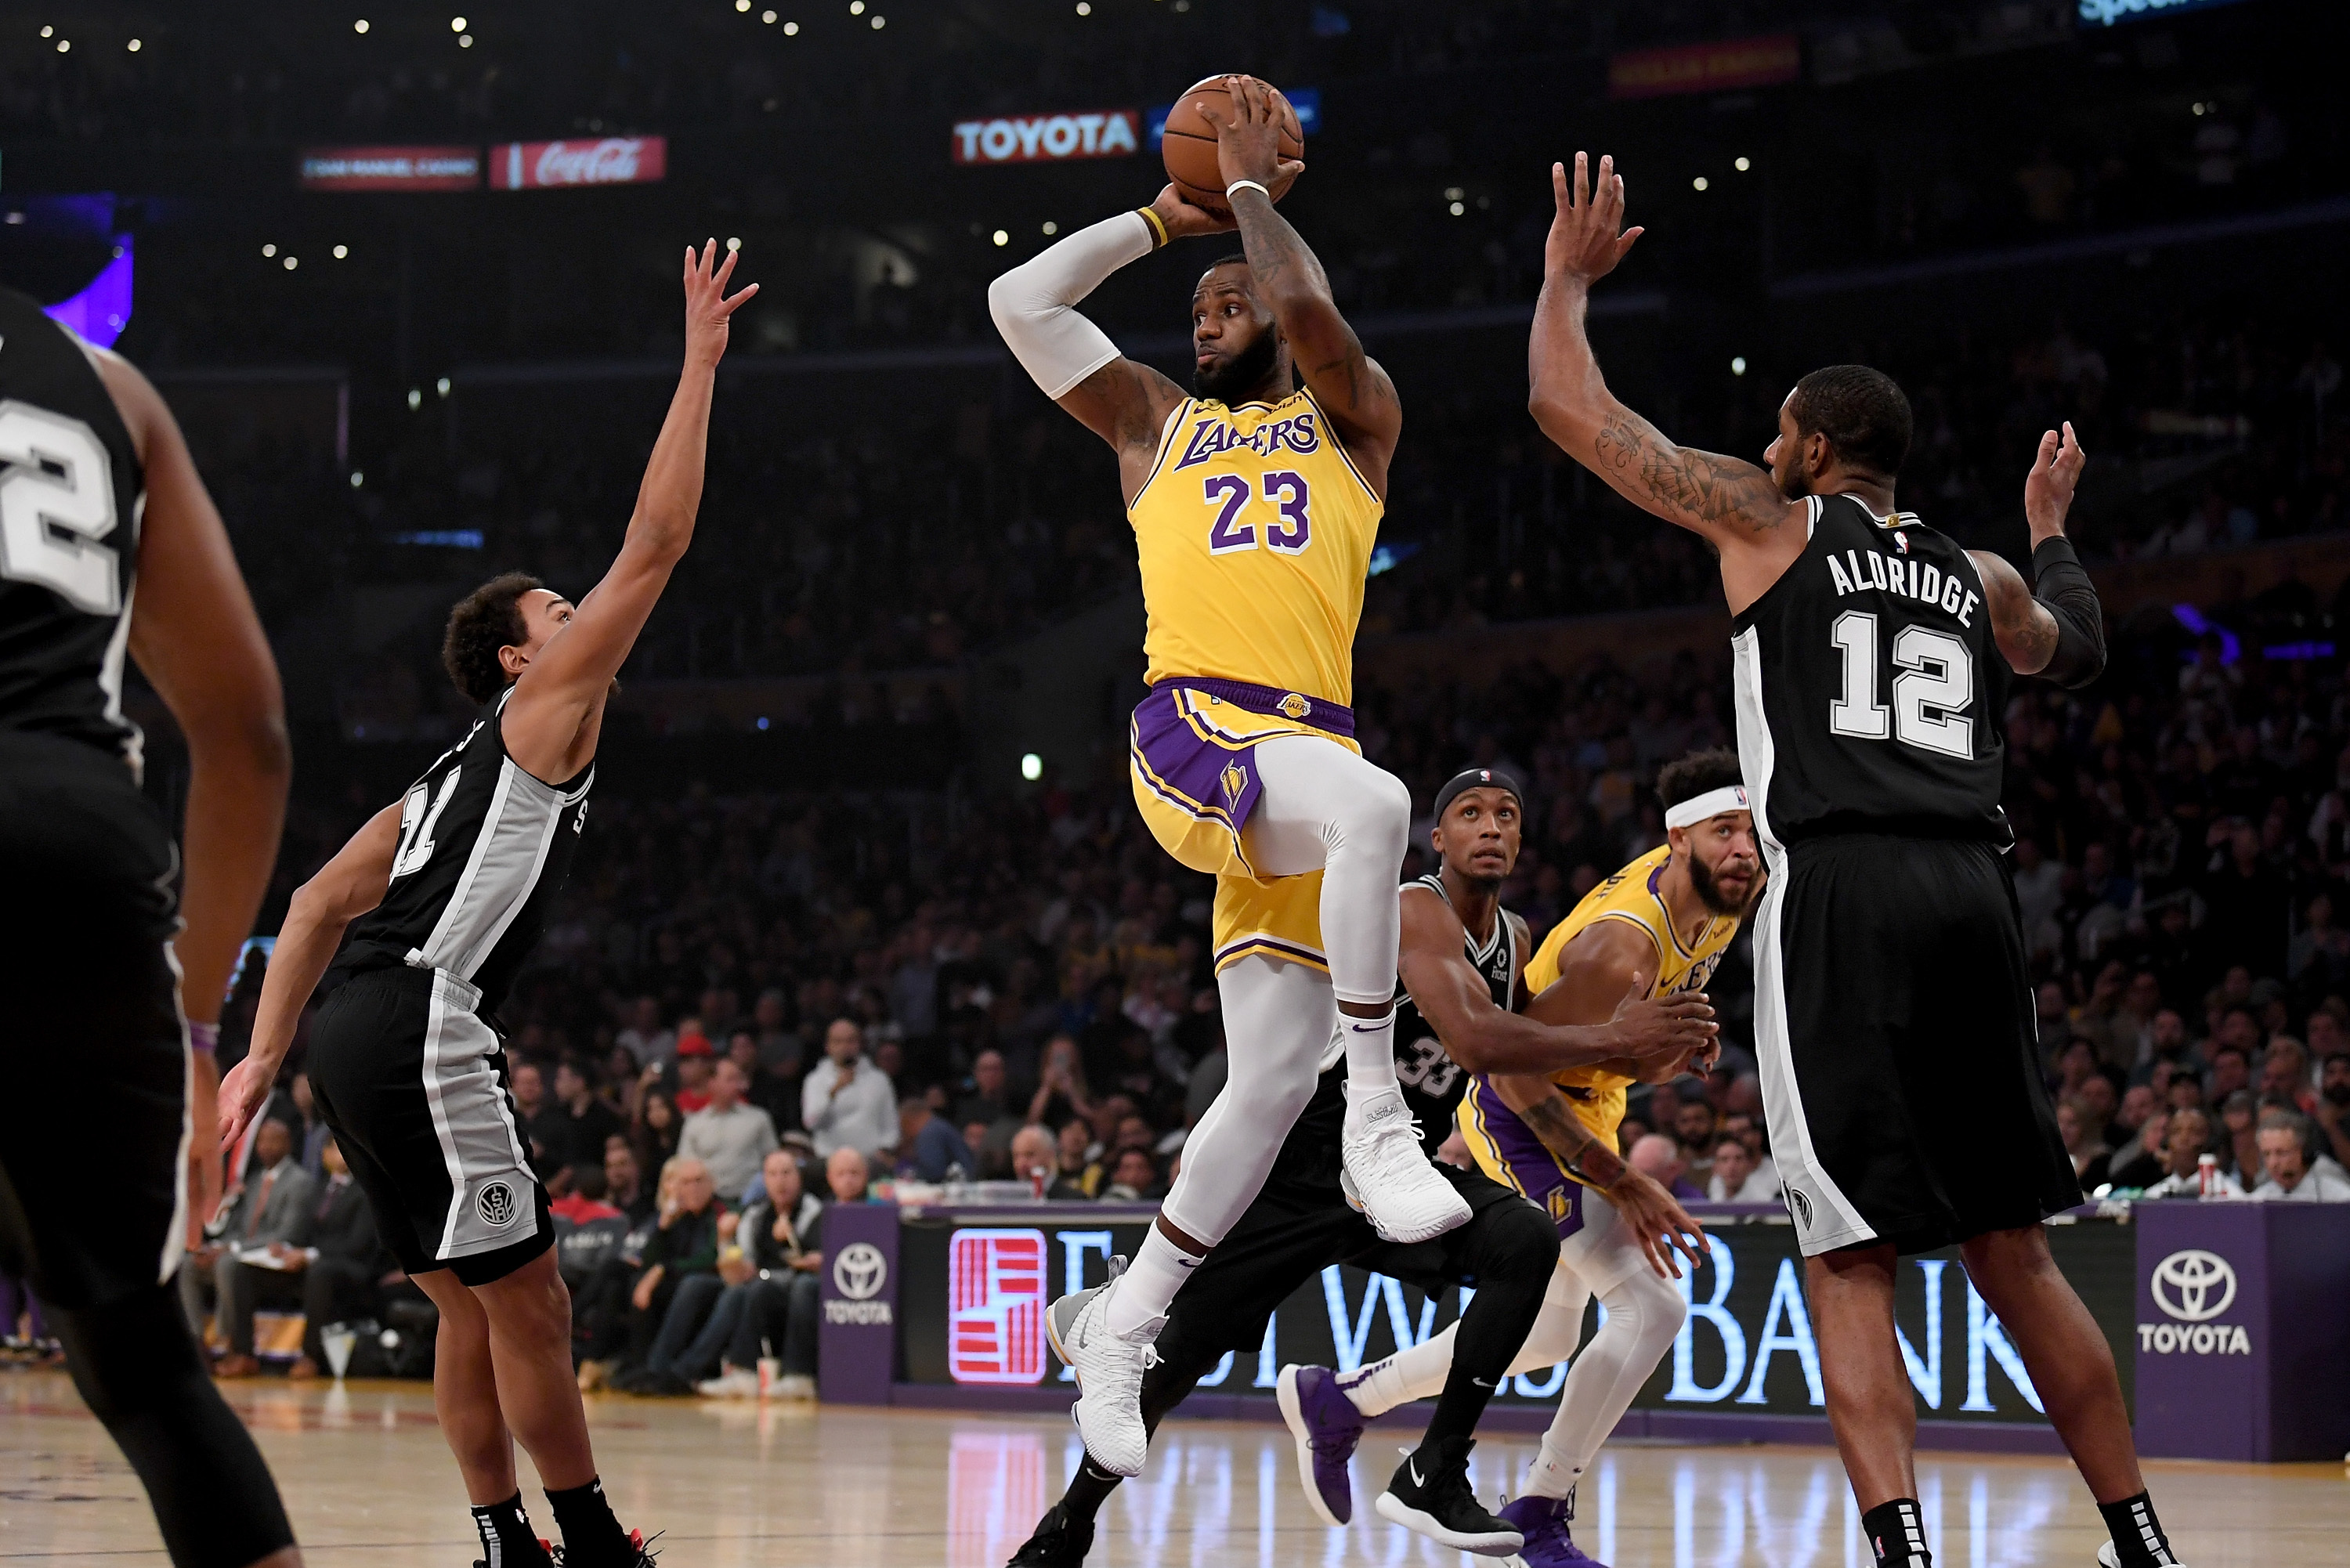 timeless design 87cfe dbe2d Patty Mills' Last-Second Shot Gives Spurs Win vs. LeBron ...